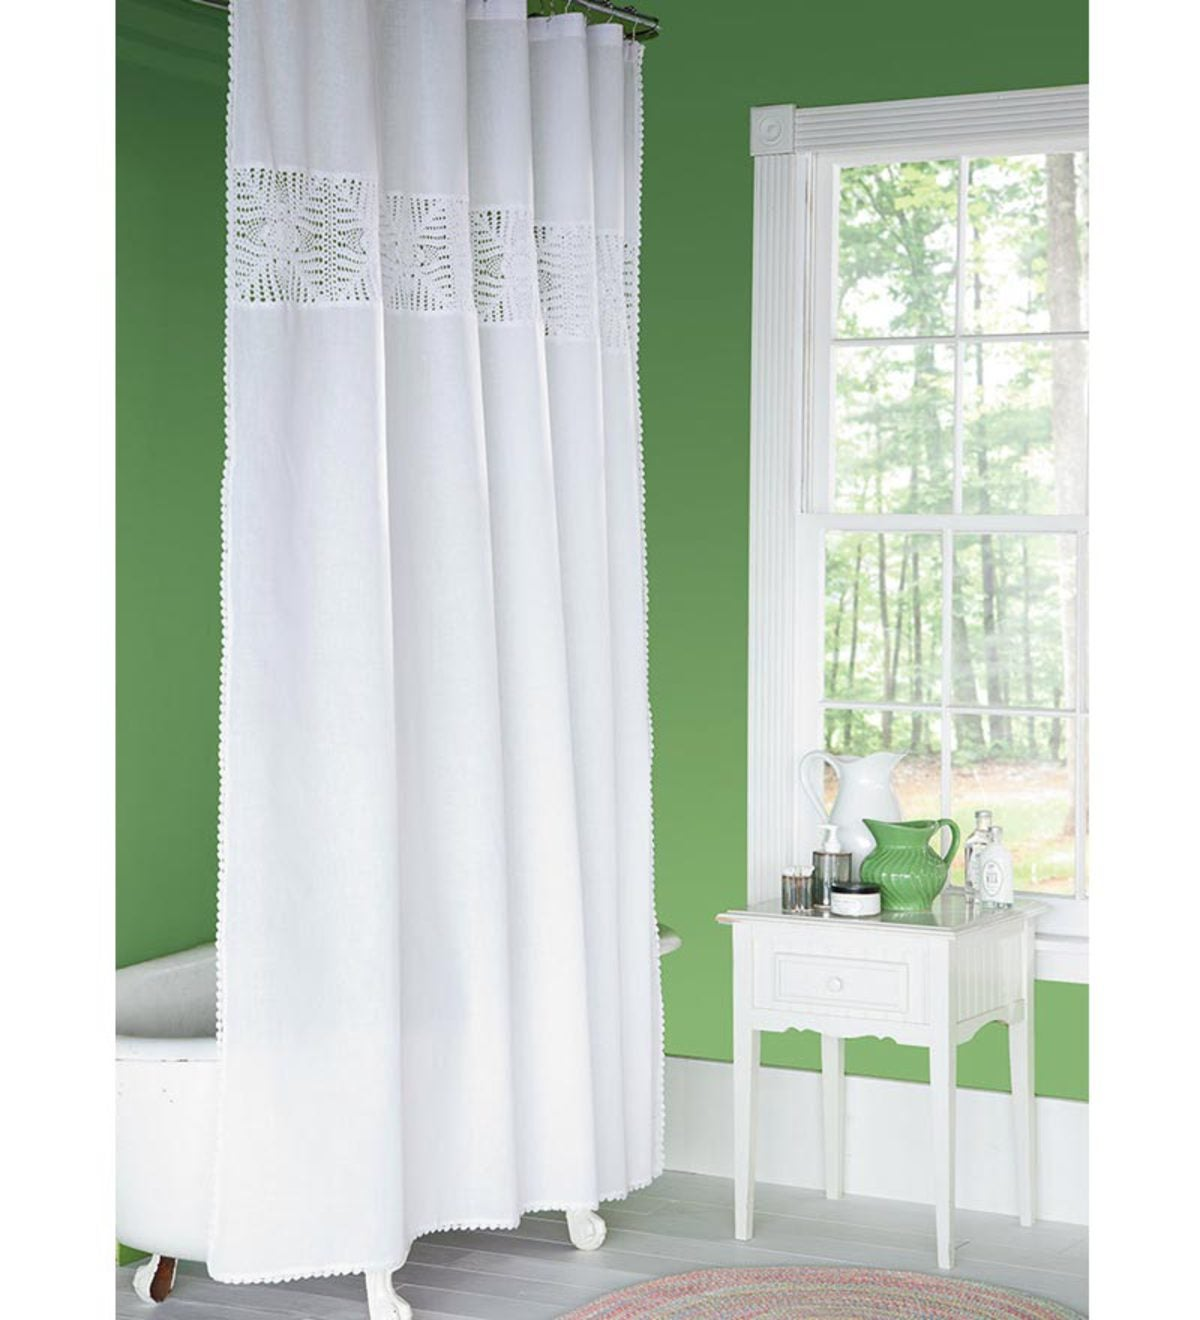 Hand-Crocheted Cotton Shower Curtain - Natural